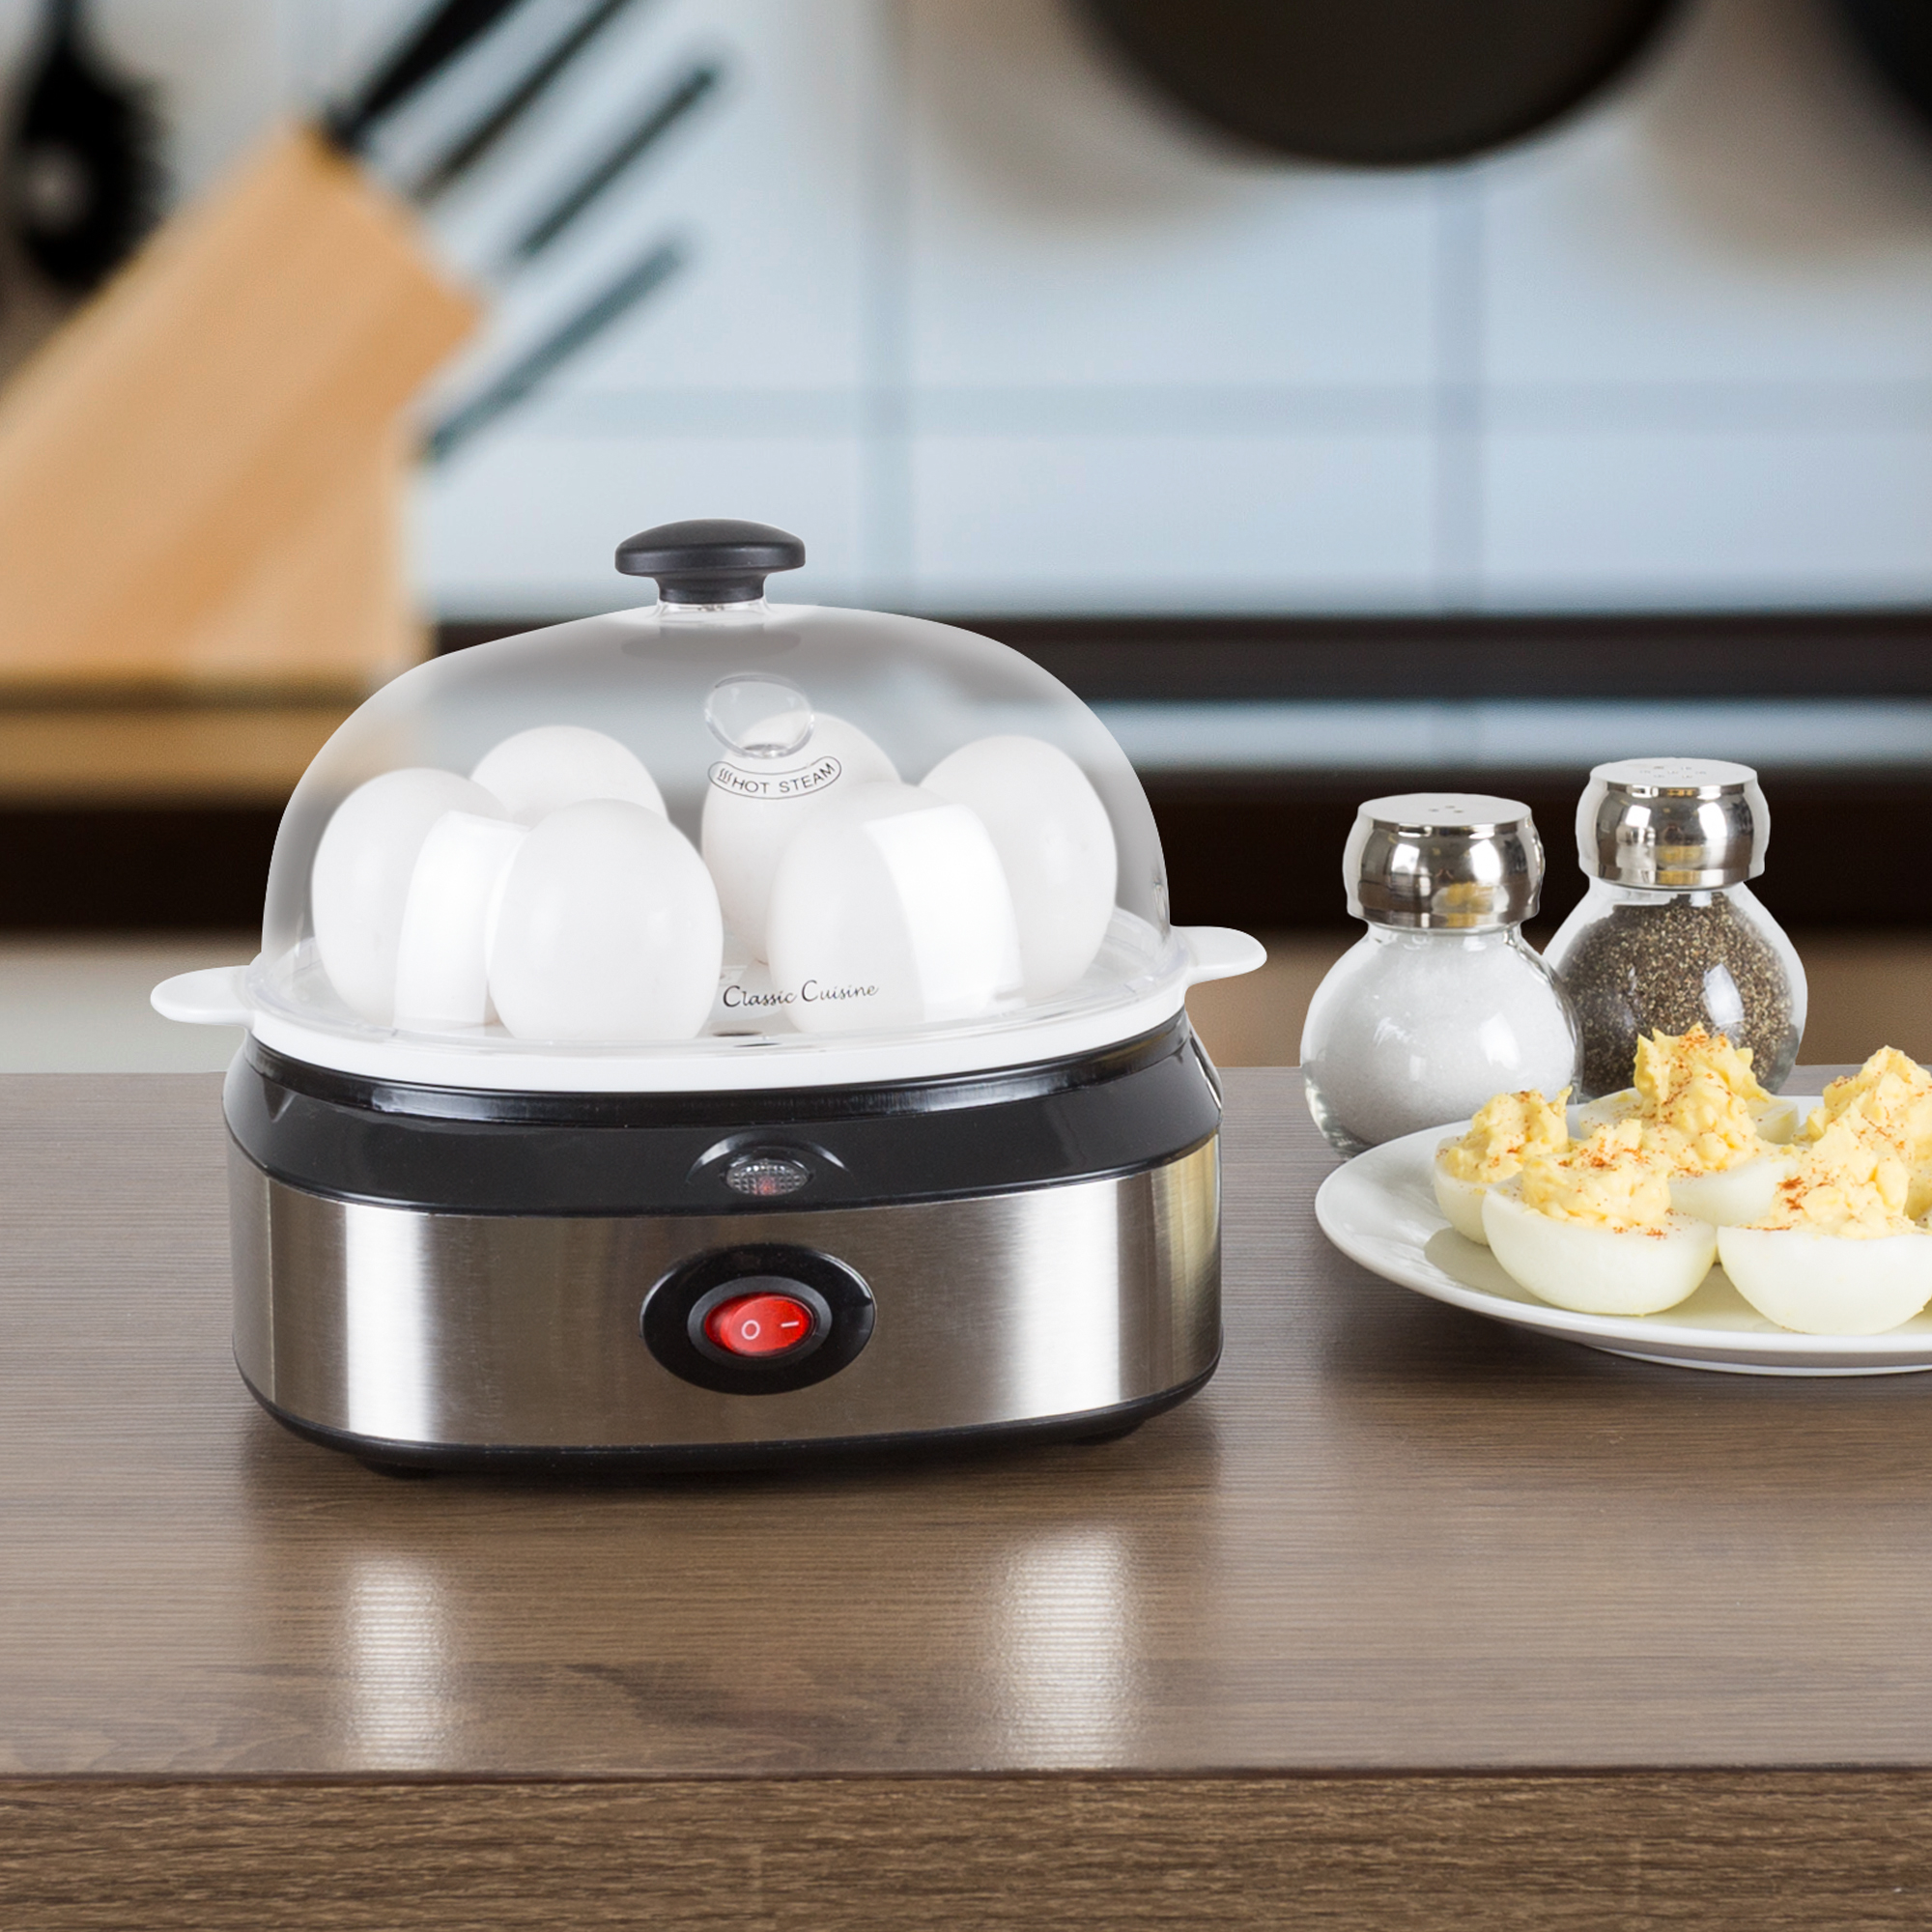 Multi-Function Electric Egg Cooker 7 Egg Capacity Omelet Poached Eggs